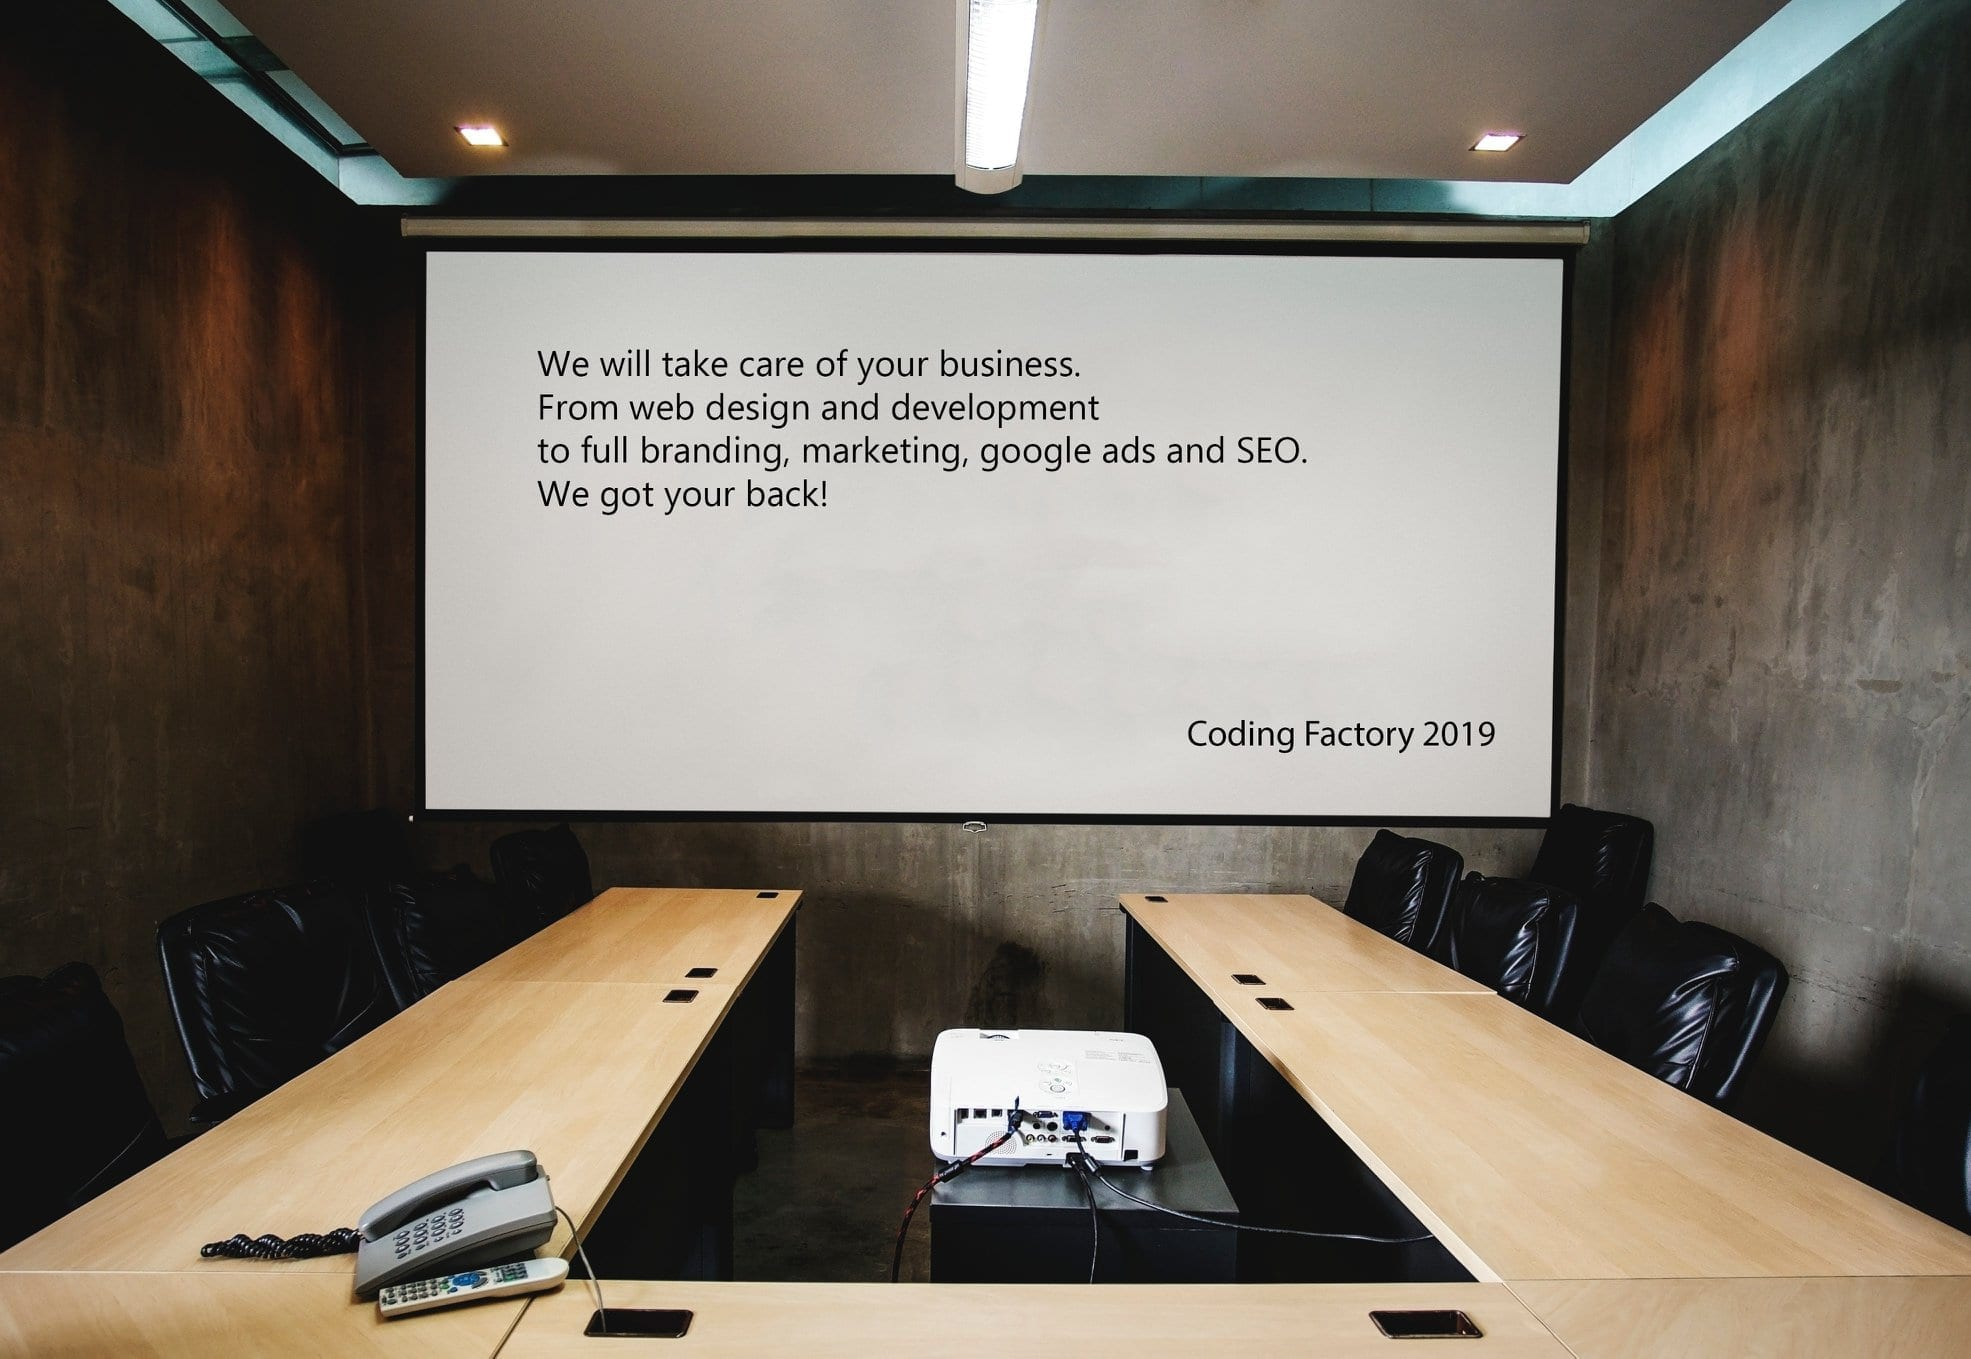 Quote from Coding Factory Ceo